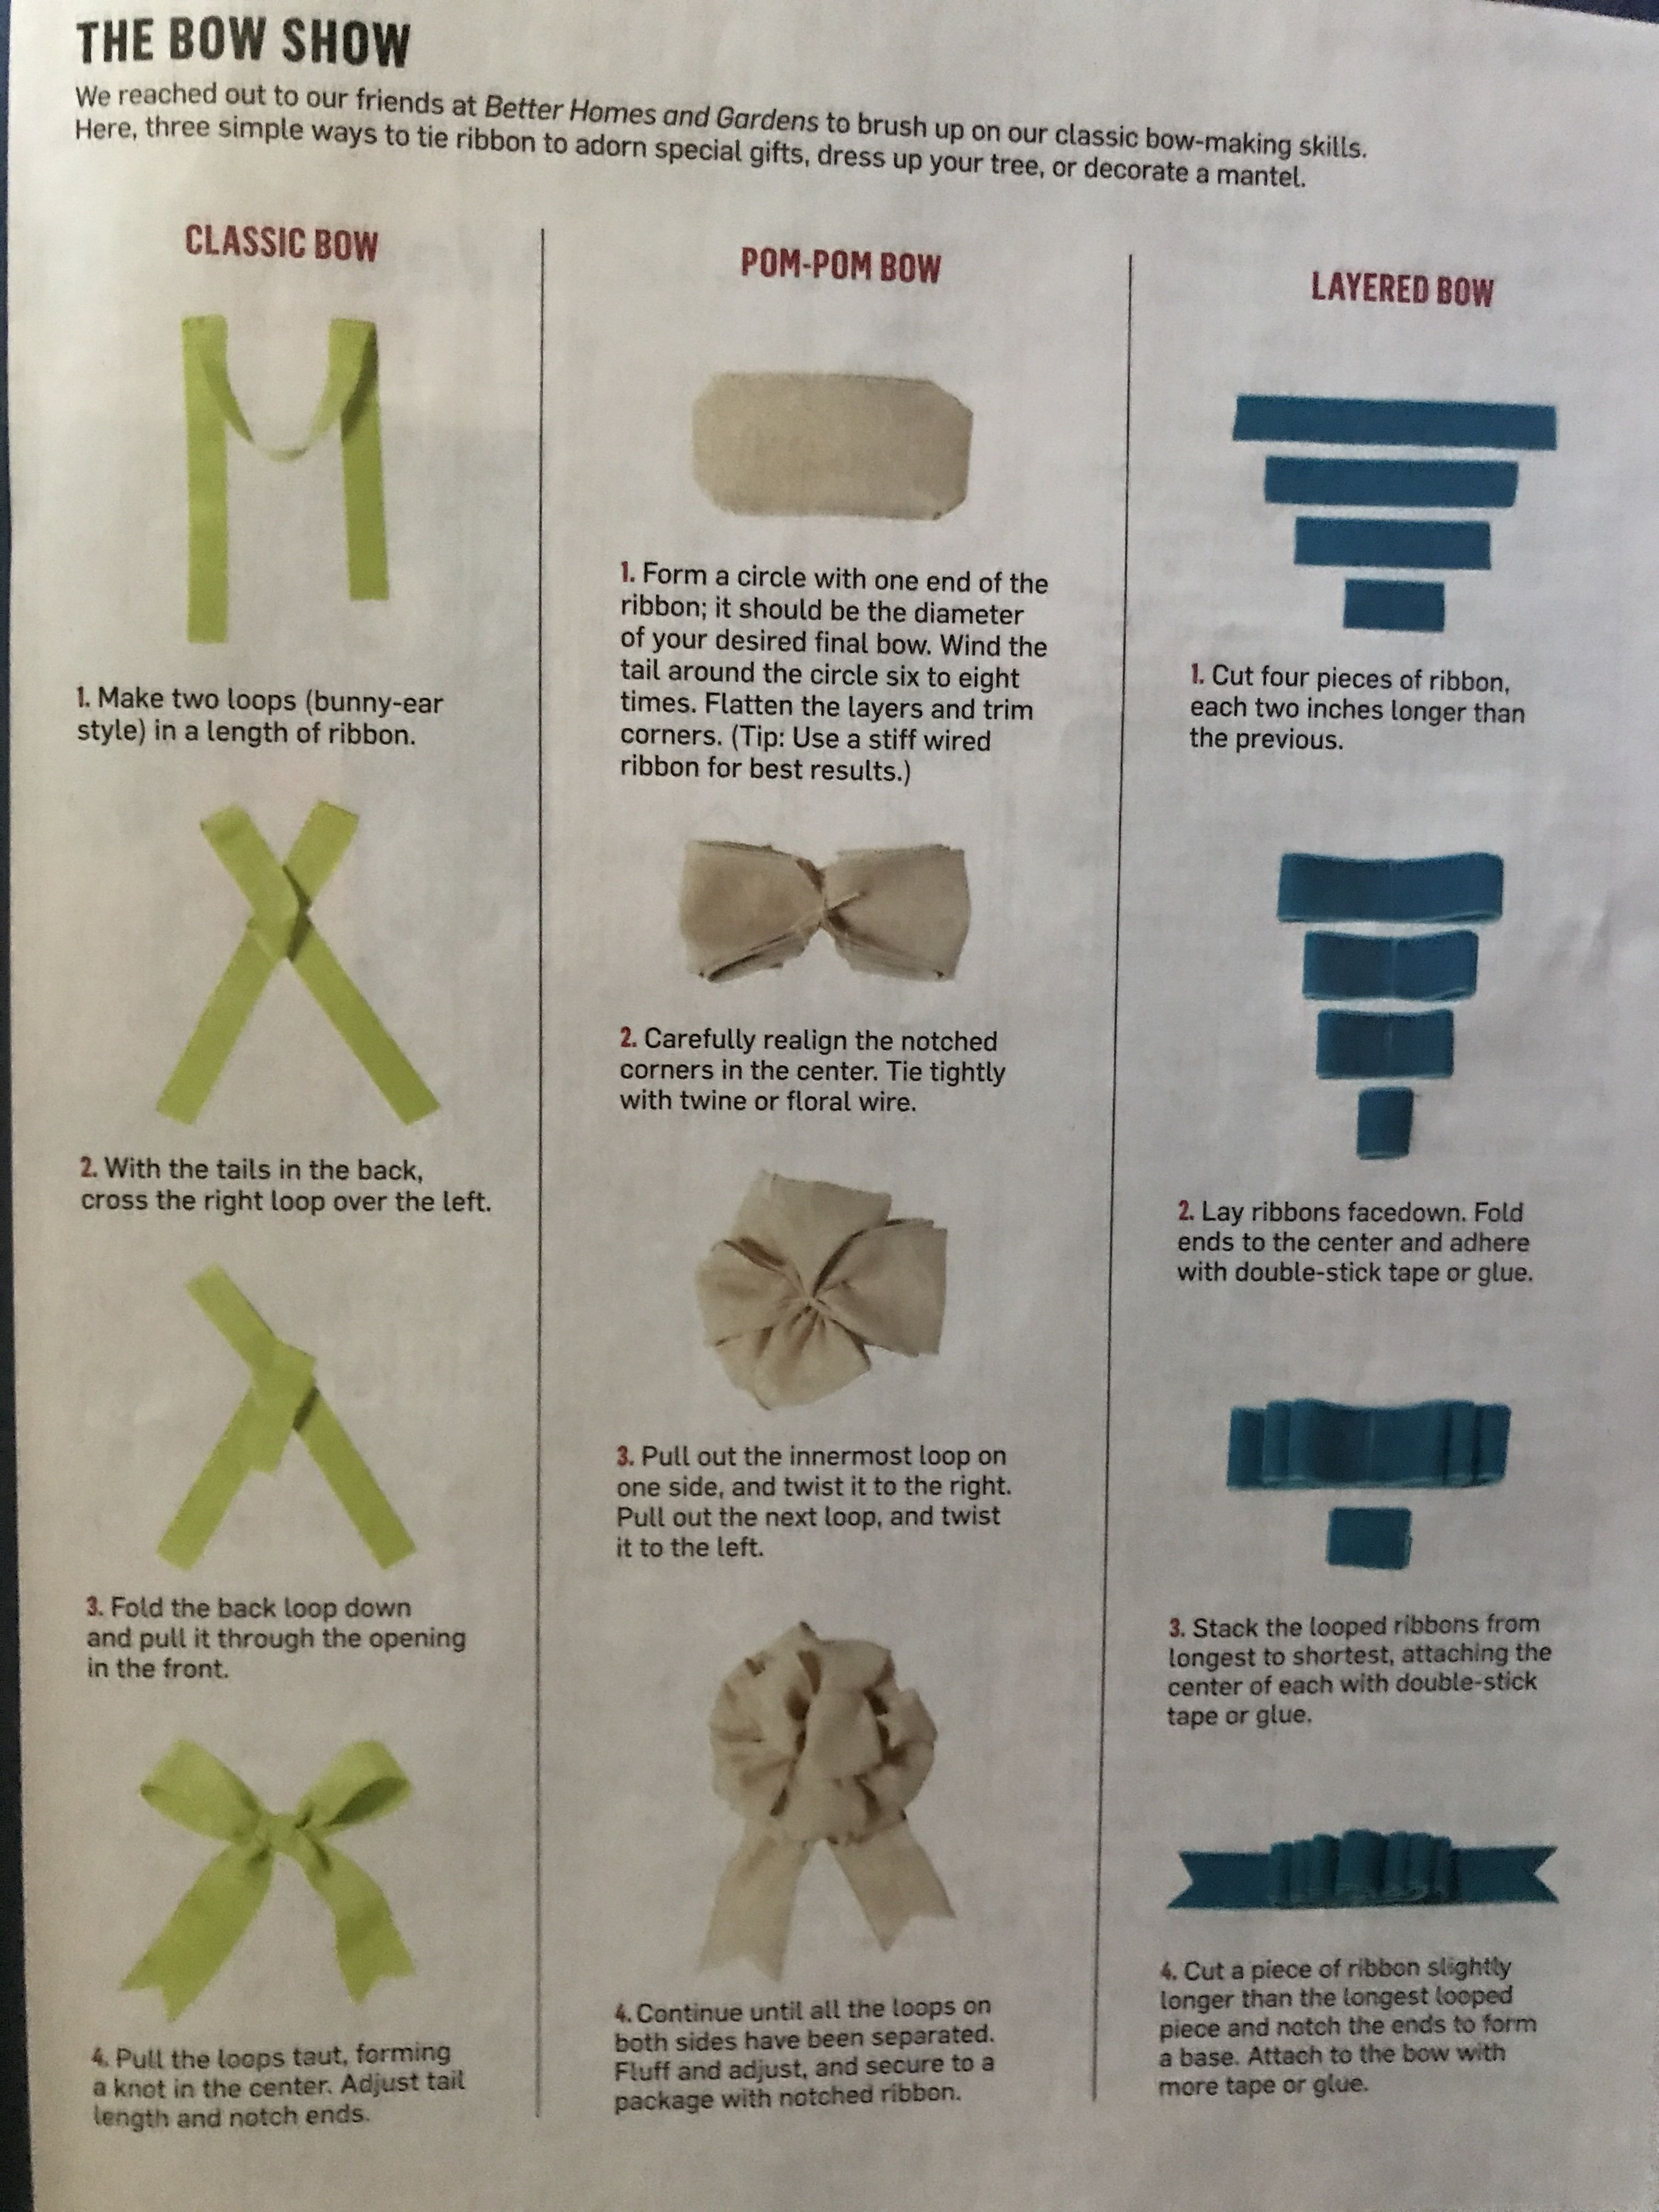 DIY How To Make: classic bow, Pom Pom bow and layered bow | Wrapping ...